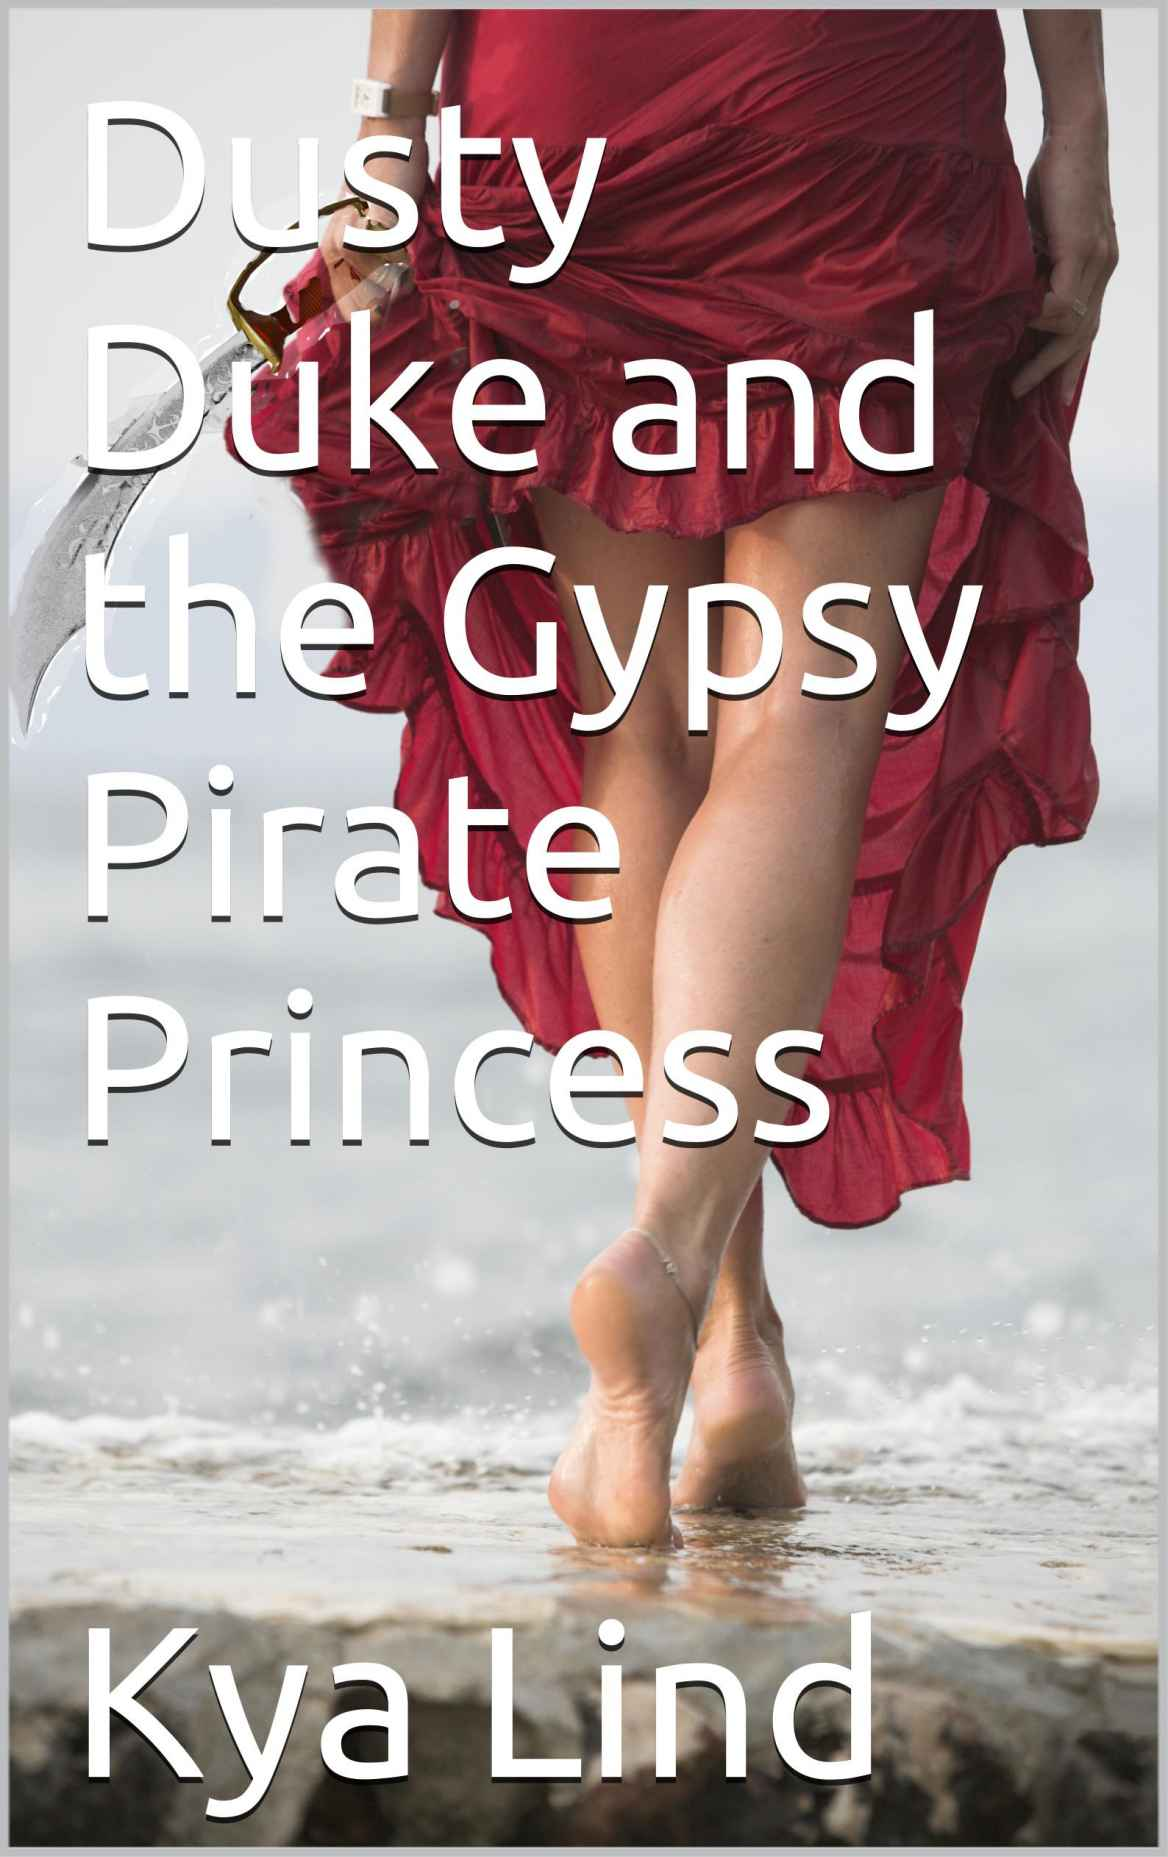 The Dusty Duke and the Gypsy Pirate Princess